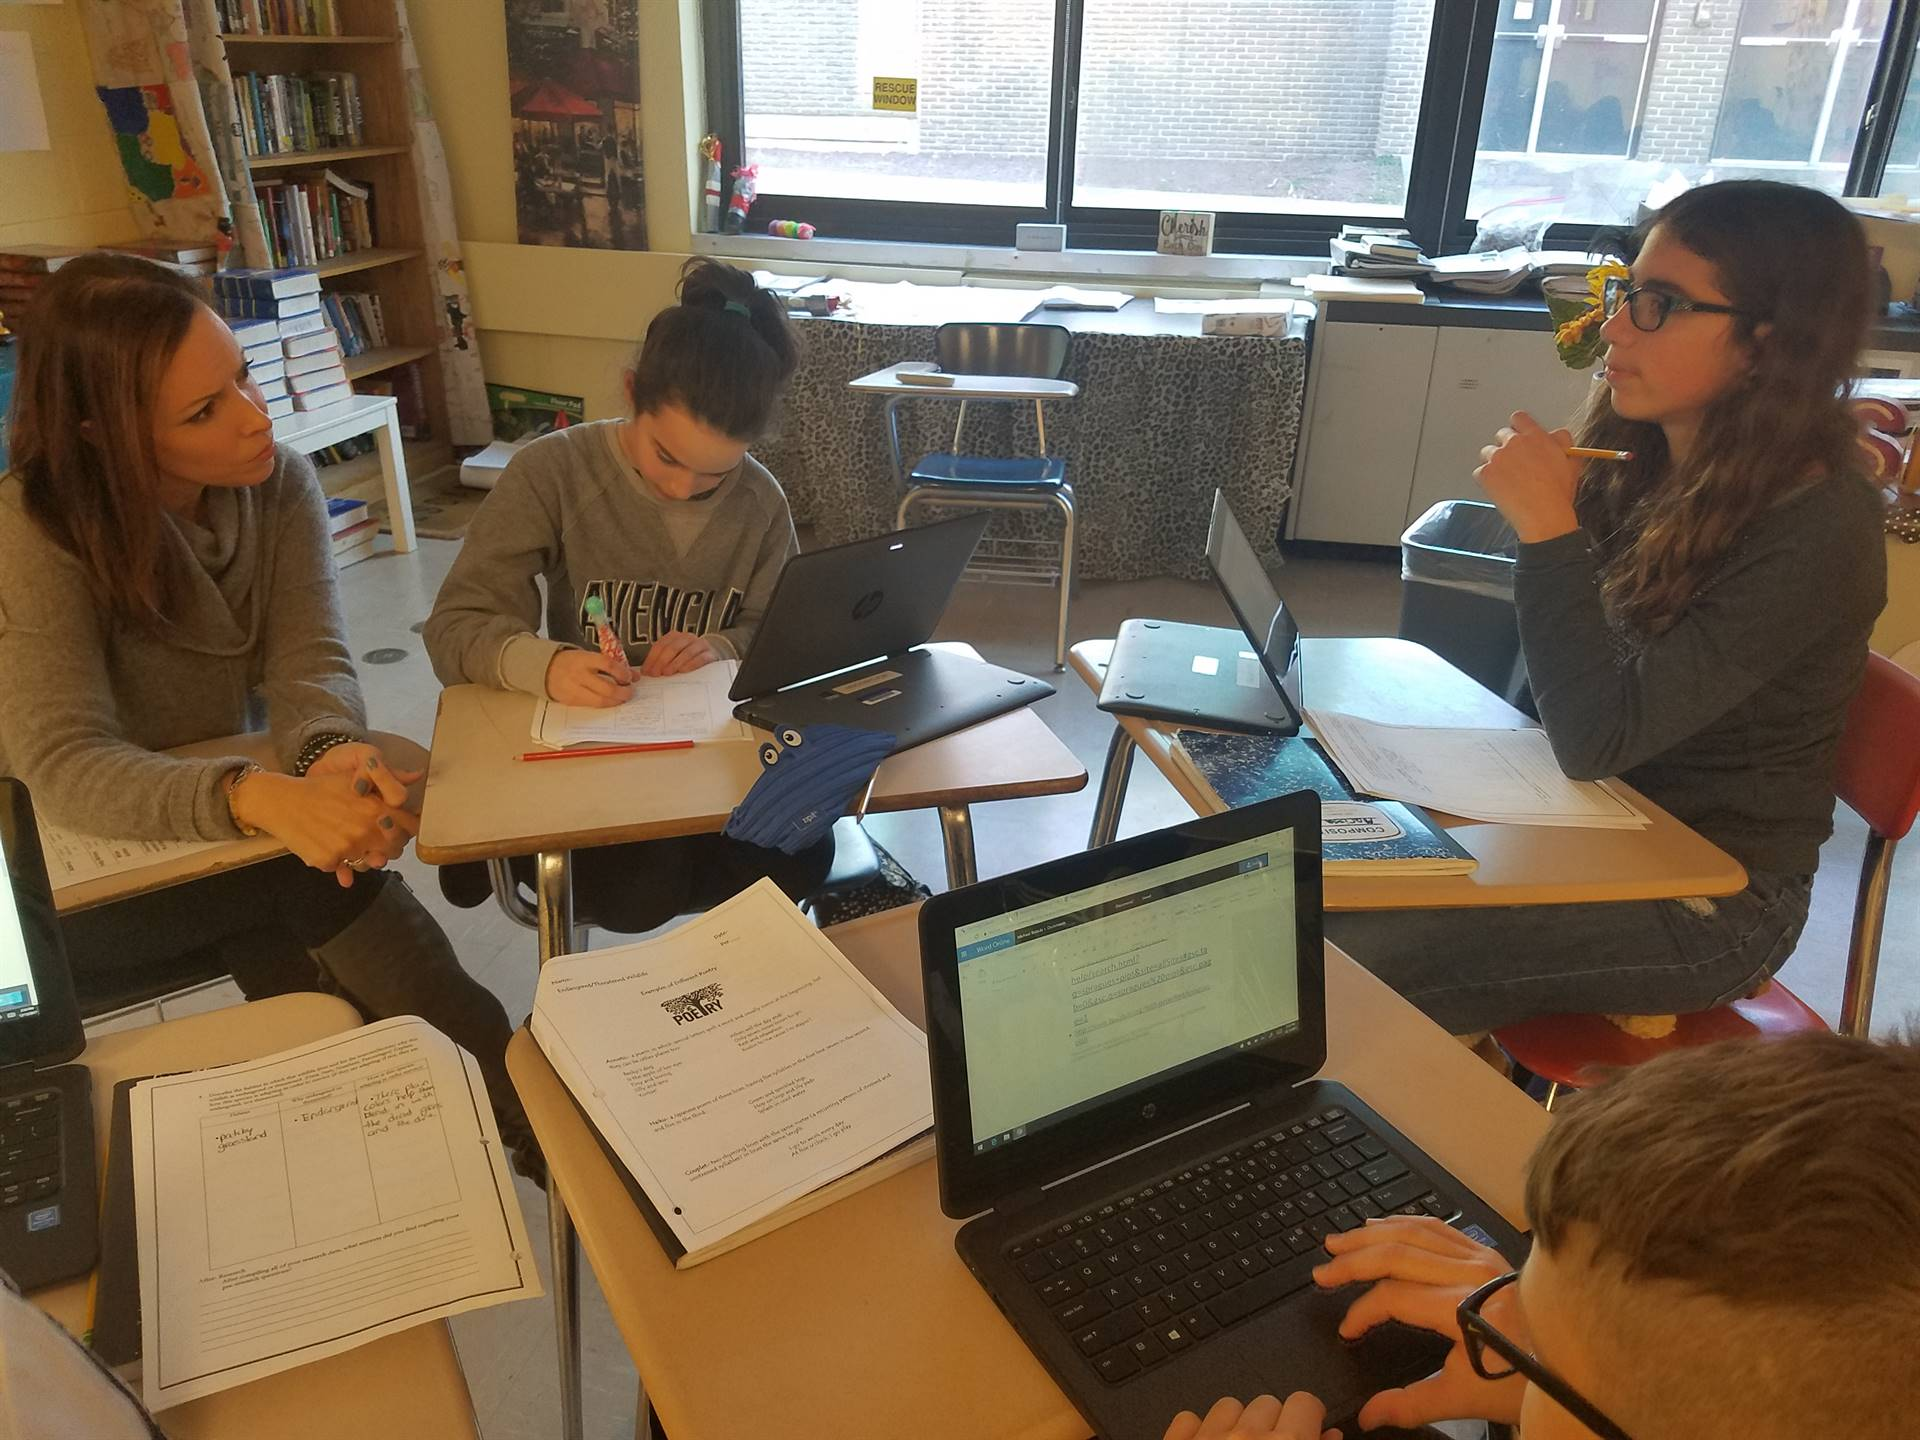 Students working in Language and Literature classes on a book.